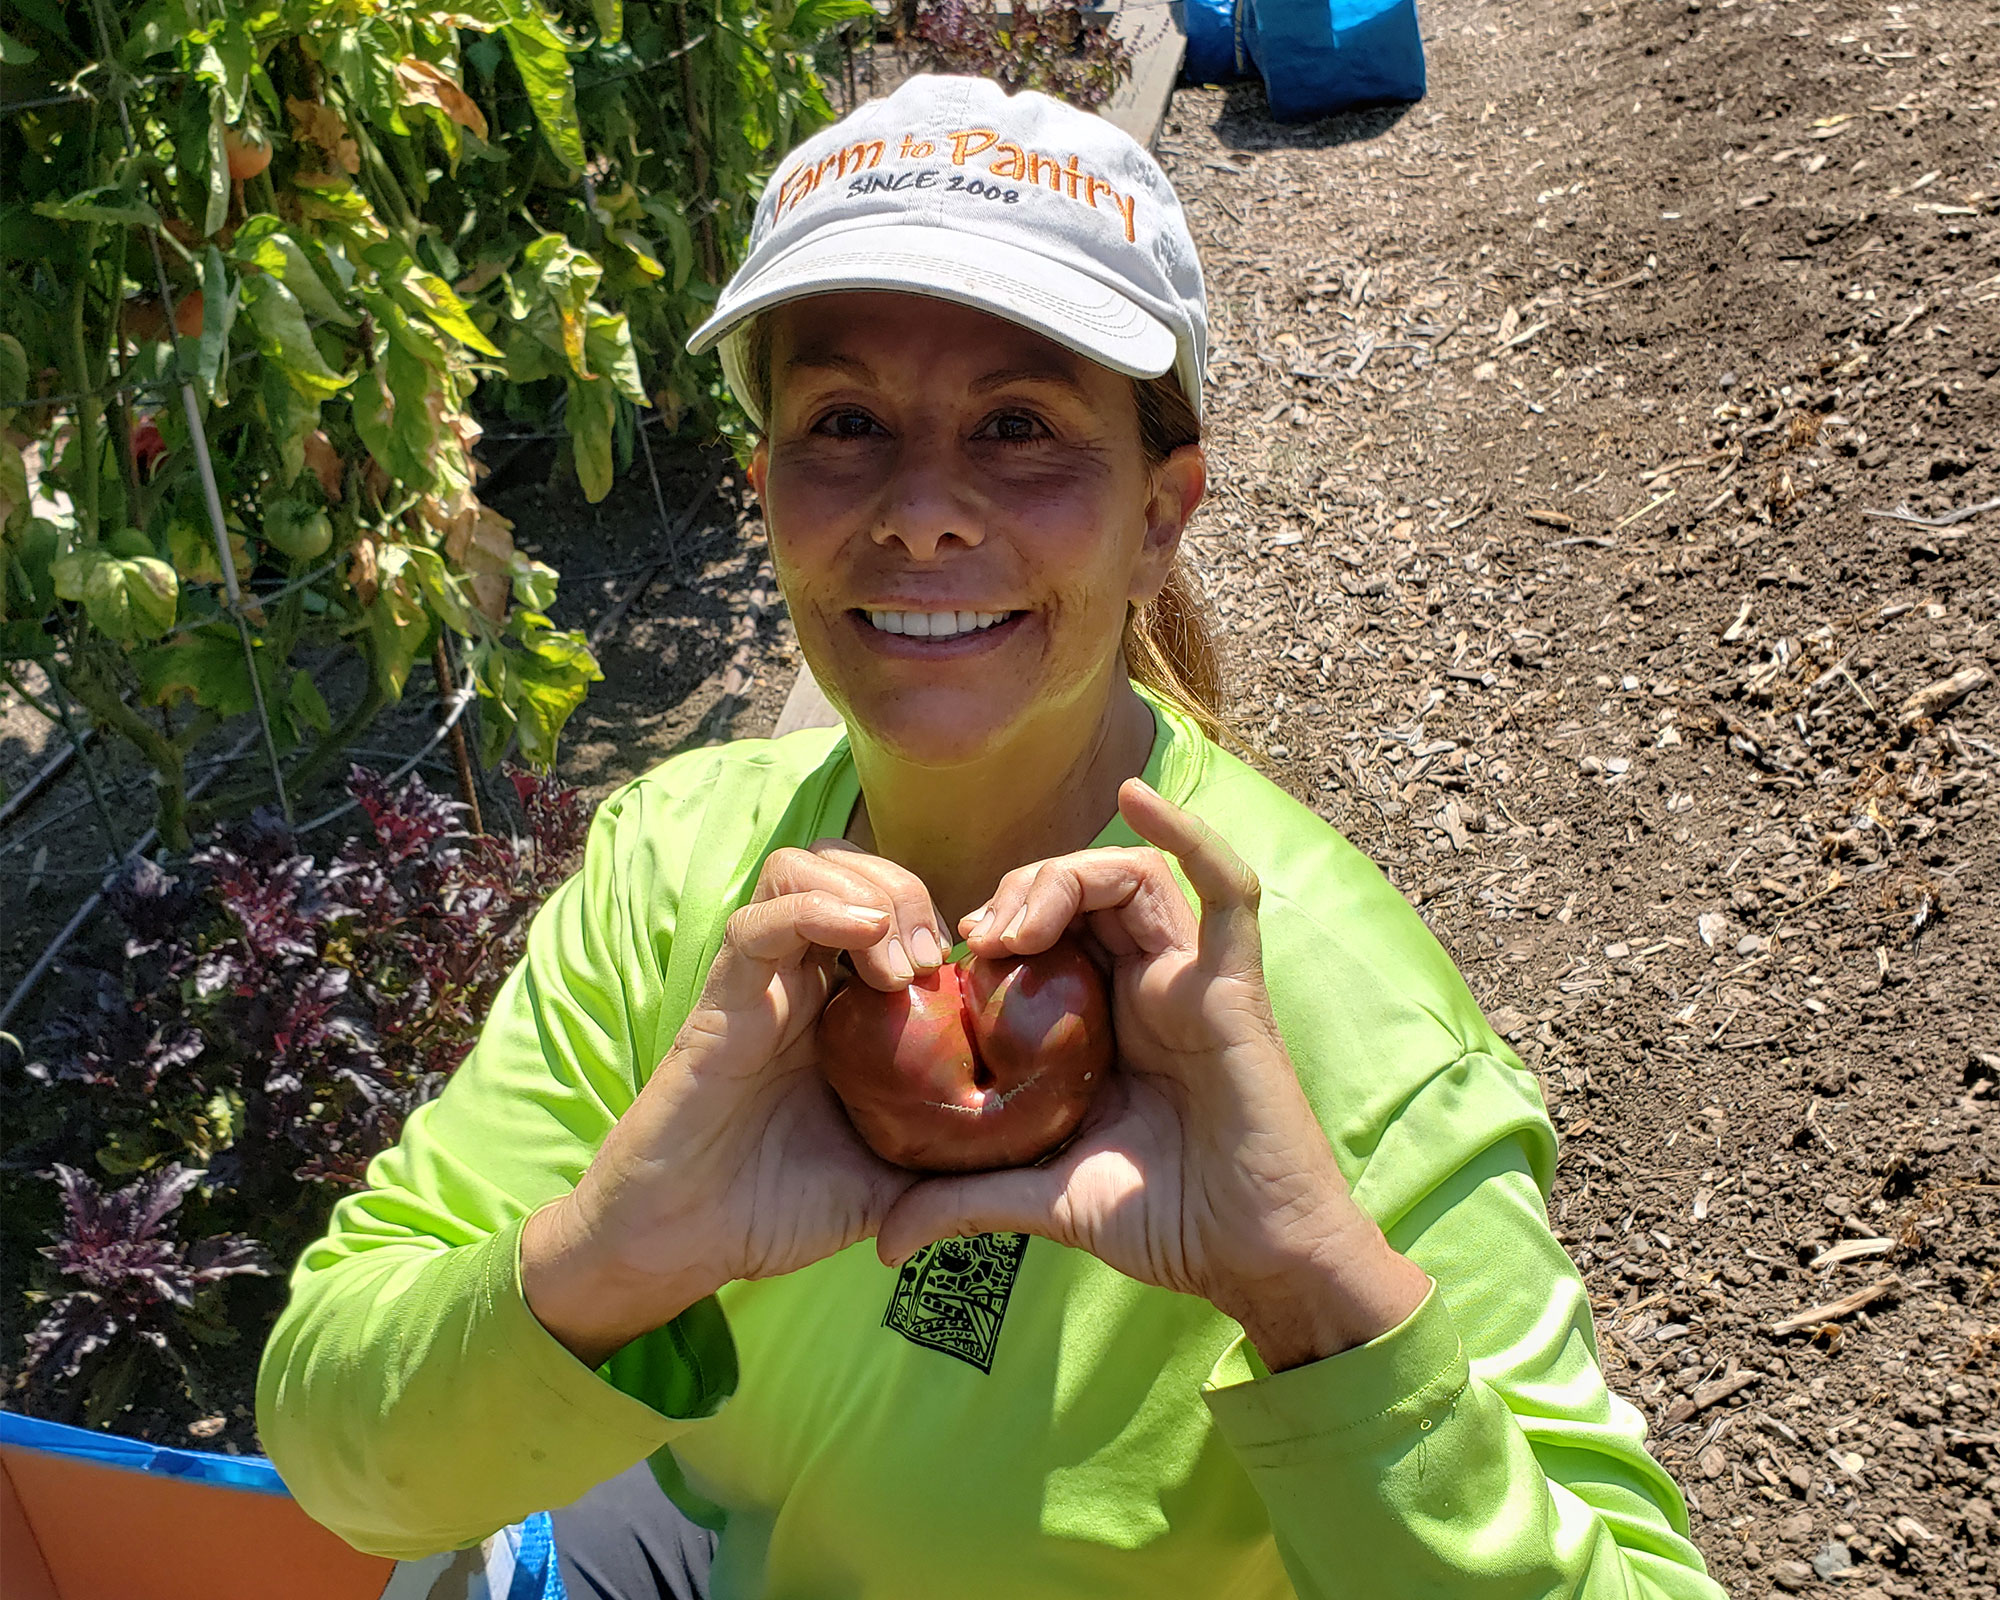 Dani Wilcox from Farm to Pantry team in the Alexander Valley. Heather Irwin/PD